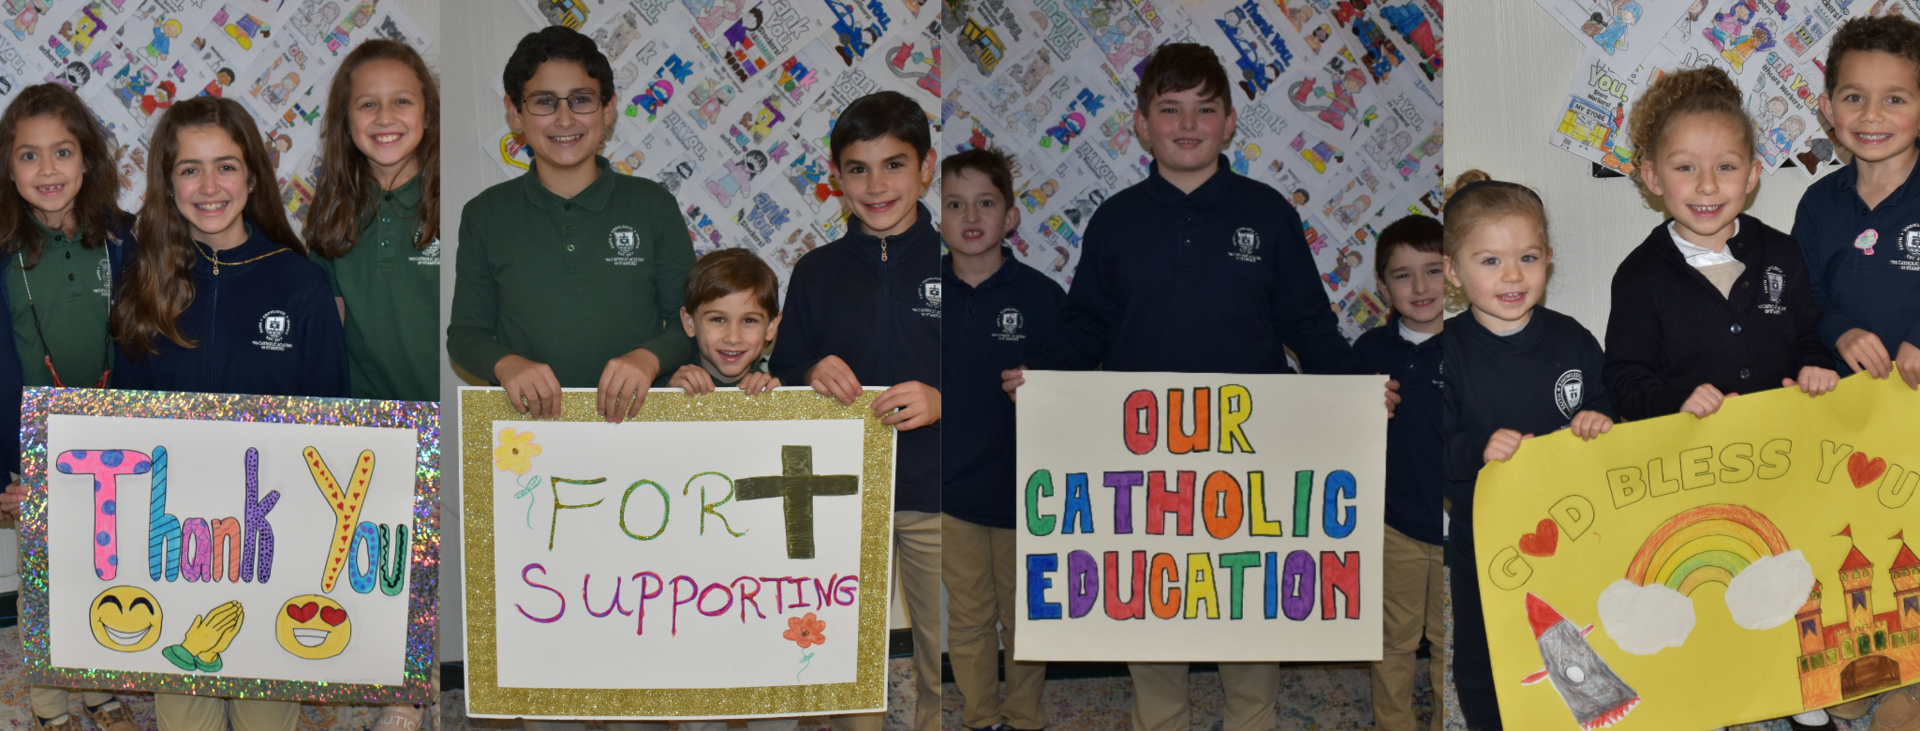 Thank You for supporting our Catholic Education! God Bless you.